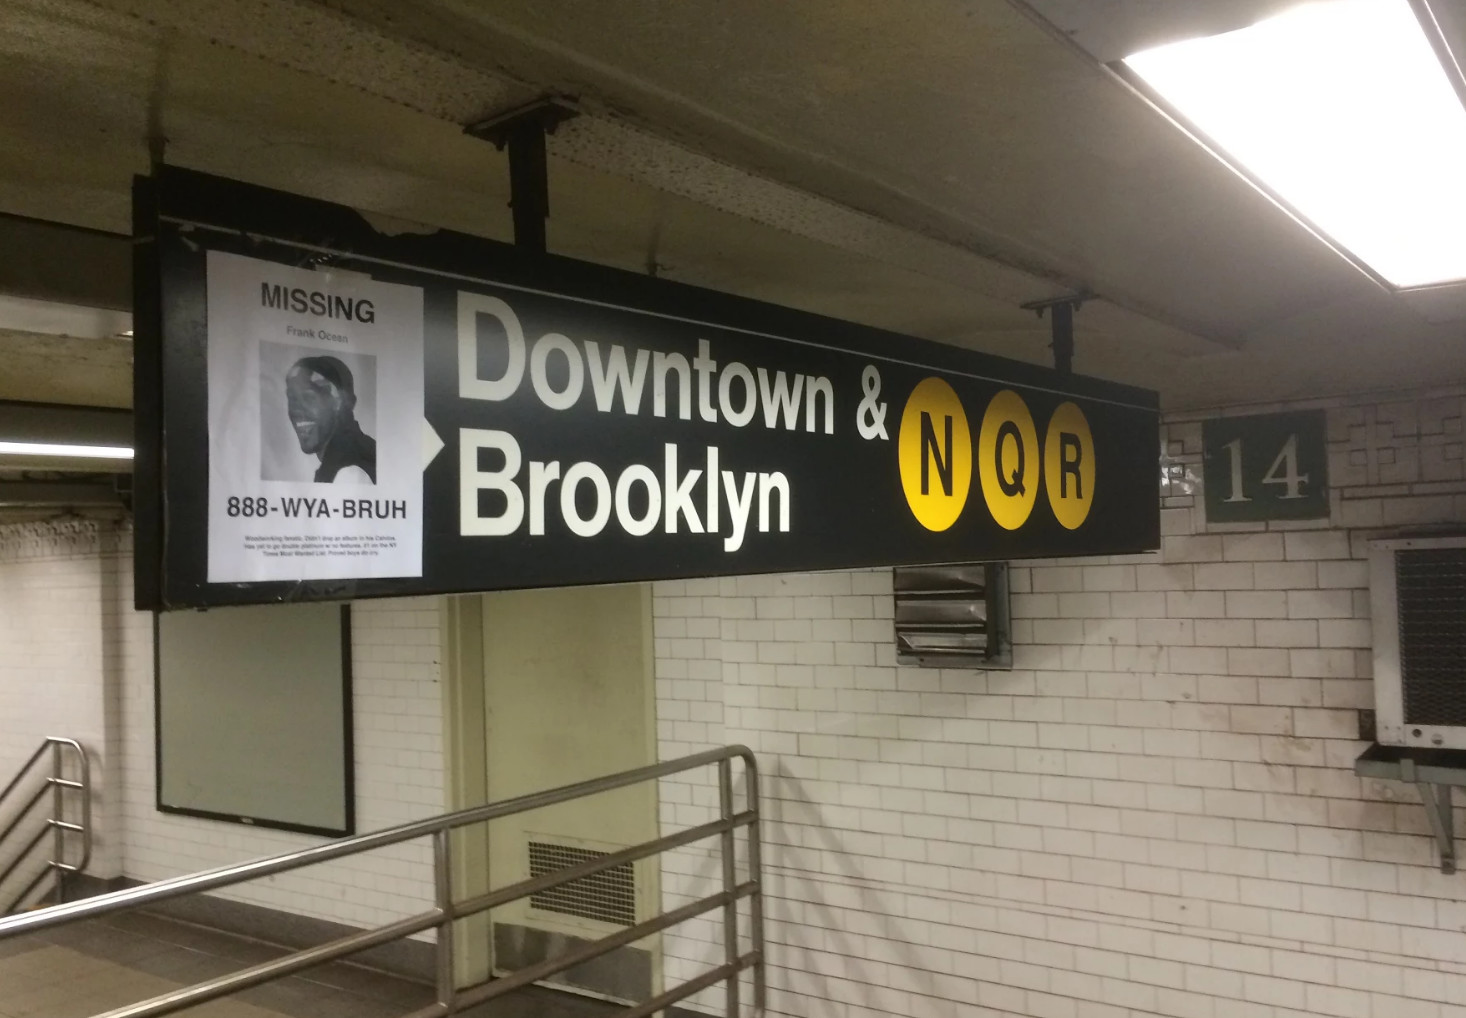 People Are Putting Up Frank Ocean MISSING Posters Around NYC.  Make Missing Poster